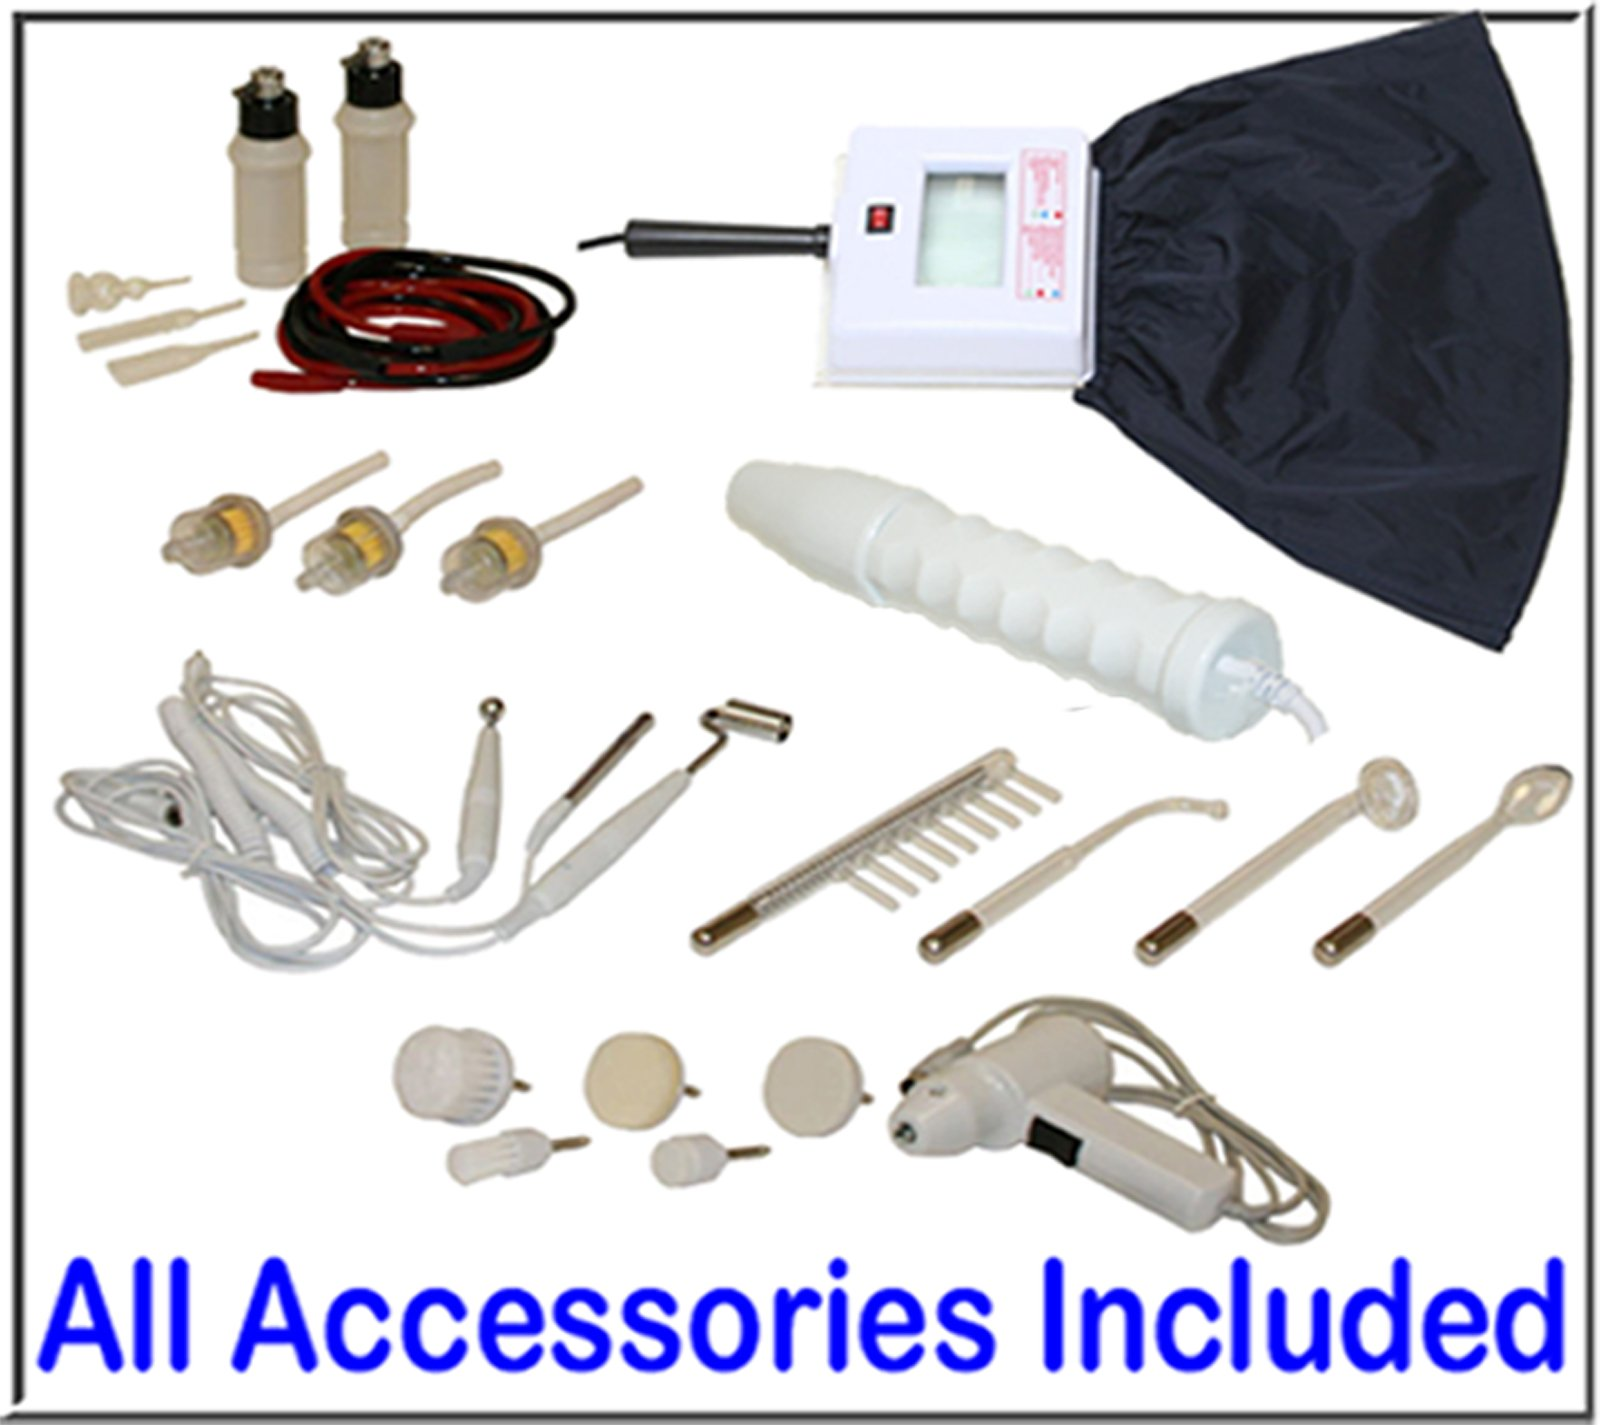 LCL Beauty 11 in 1 Multifunction Facial Machine & Fully Adjustable Hydraulic Bed Chair Package by LCL Beauty (Image #6)